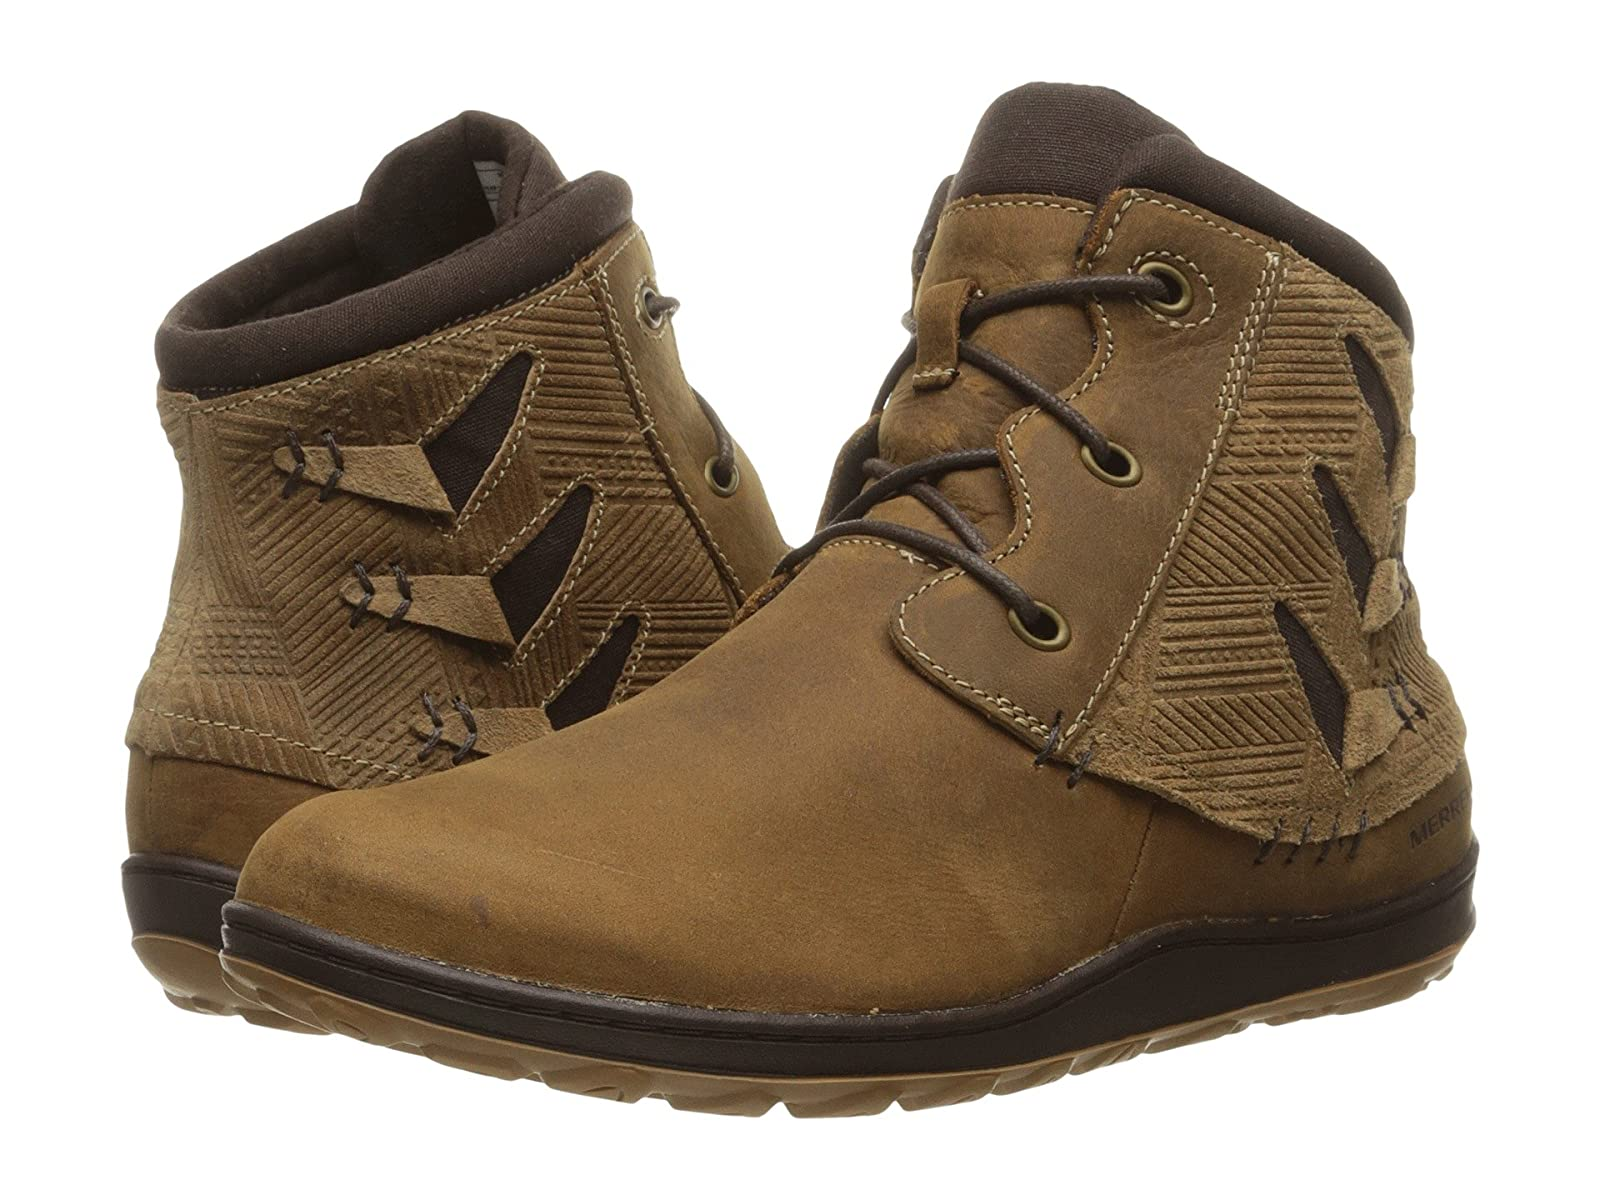 Merrell Ashland Vee AnkleCheap and distinctive eye-catching shoes